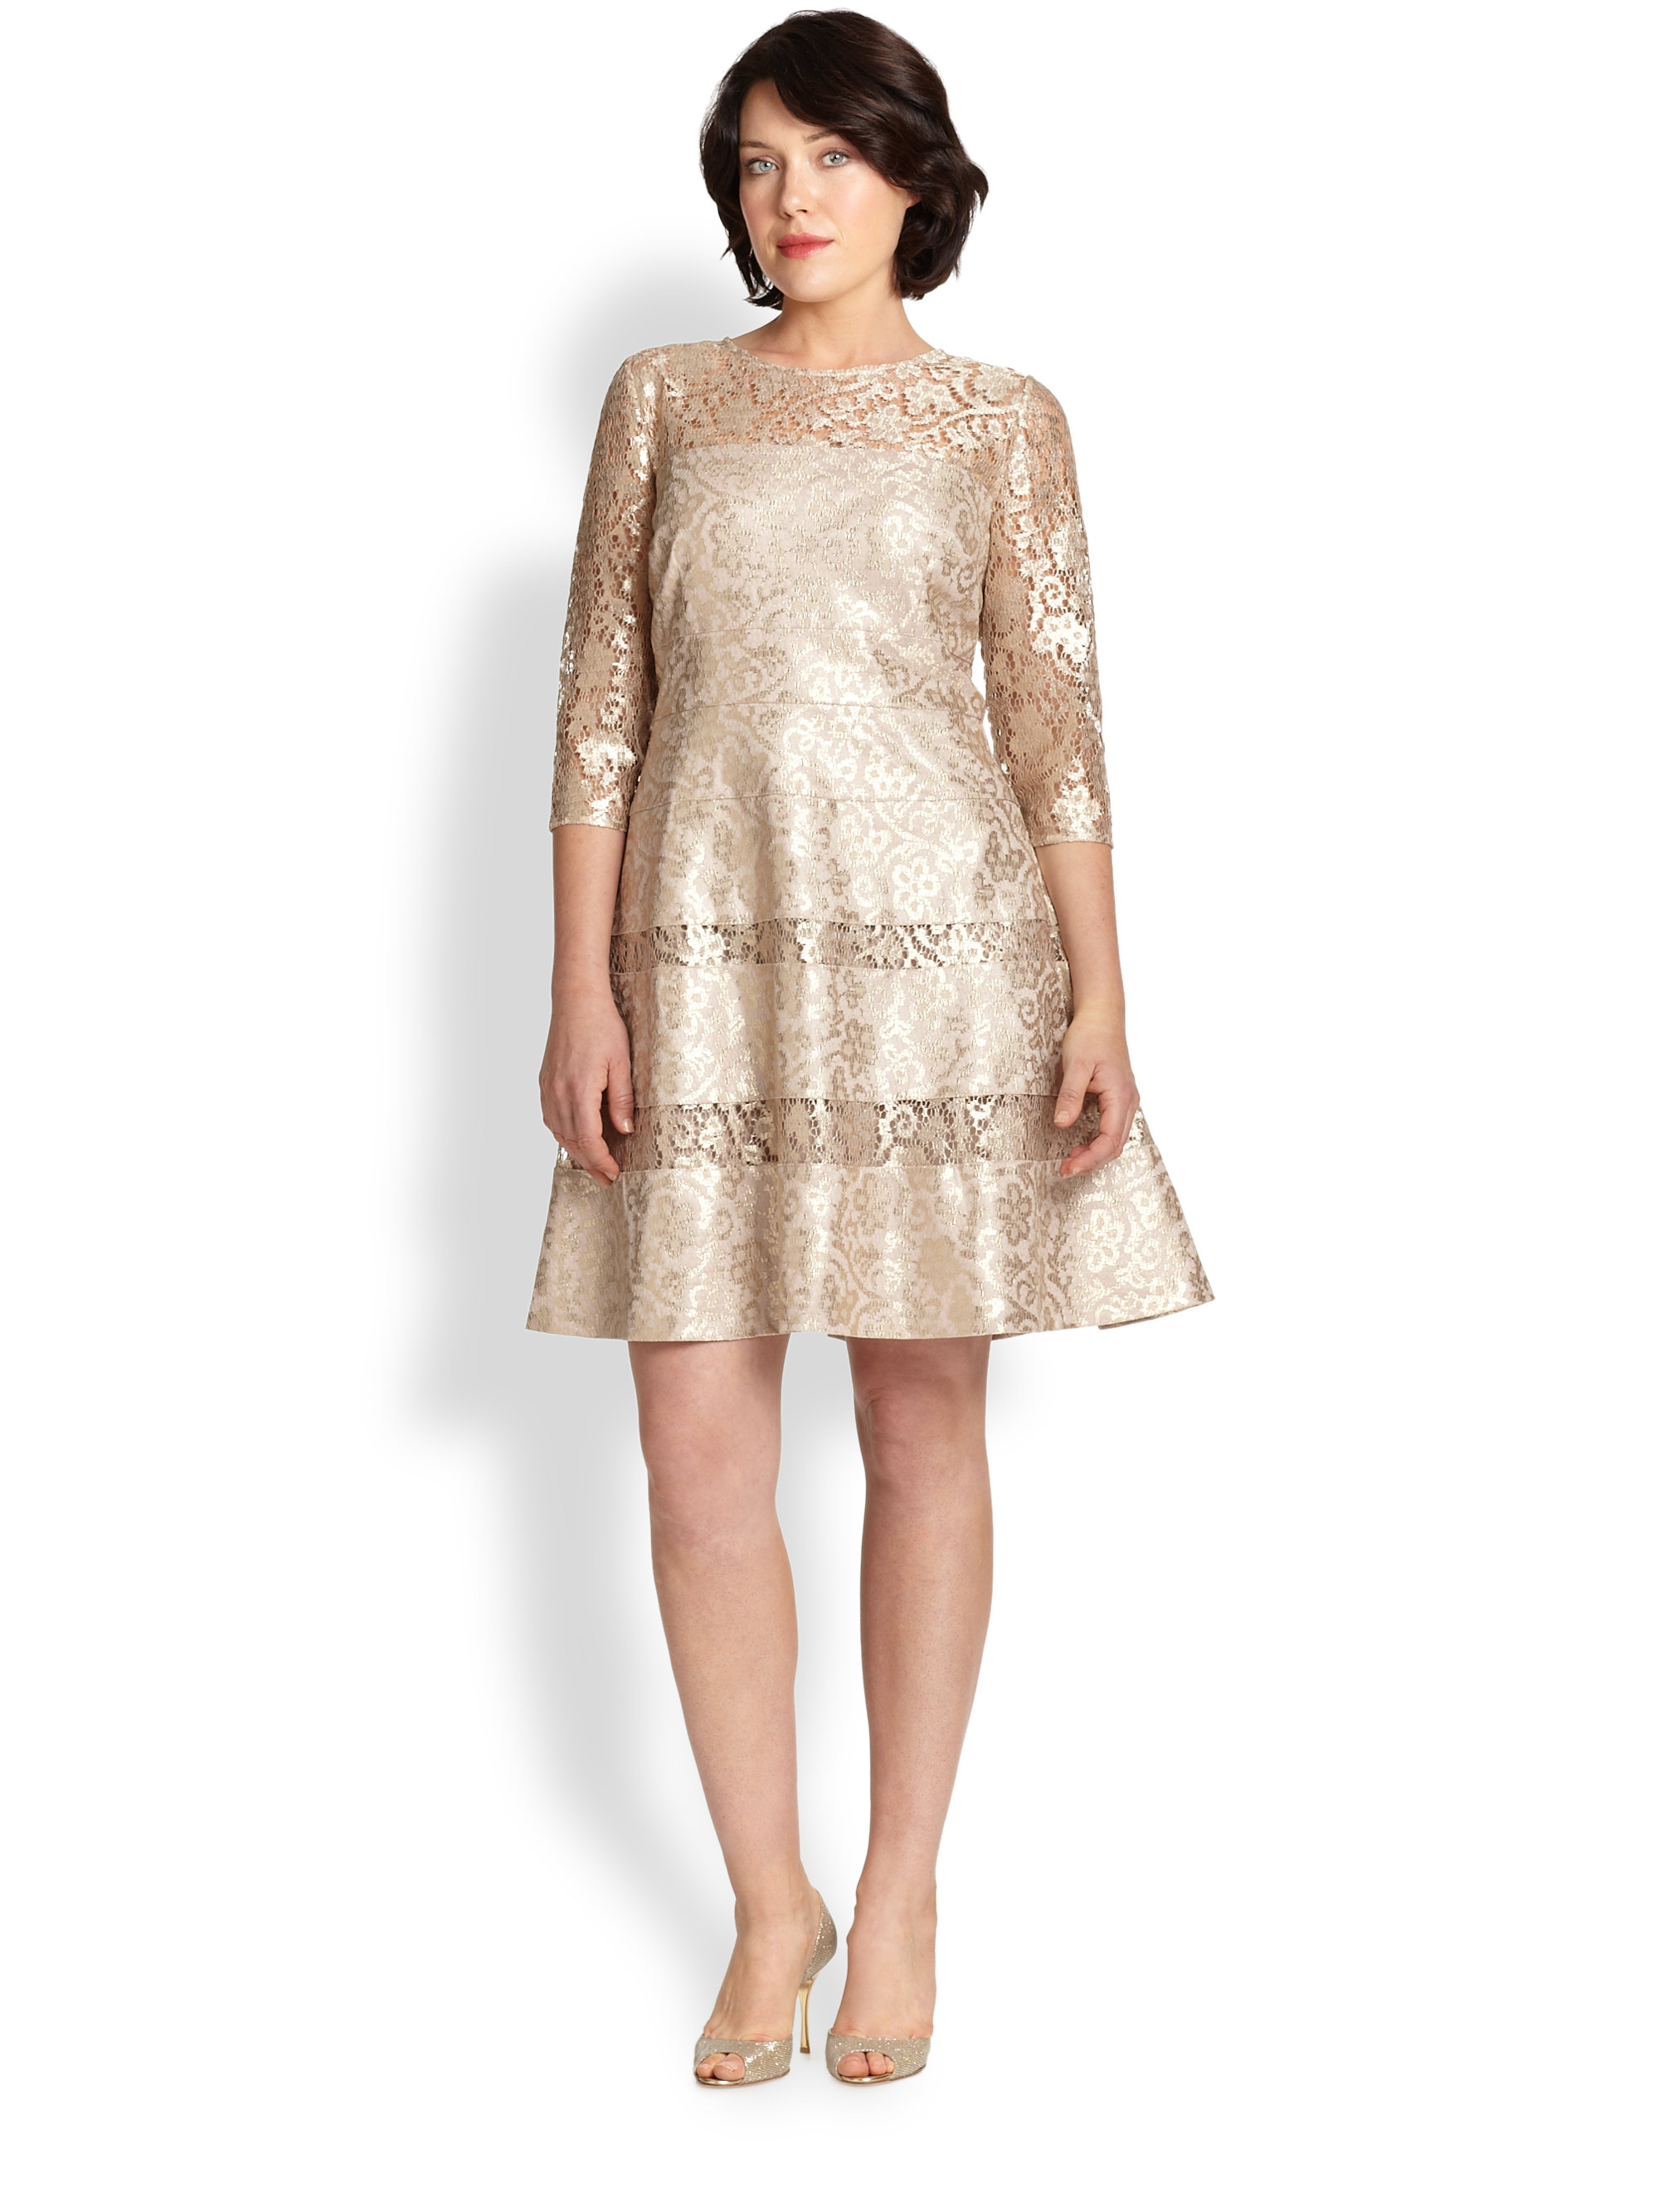 Lyst - Kay Unger Lace Fit-And-Flare Dress in Metallic